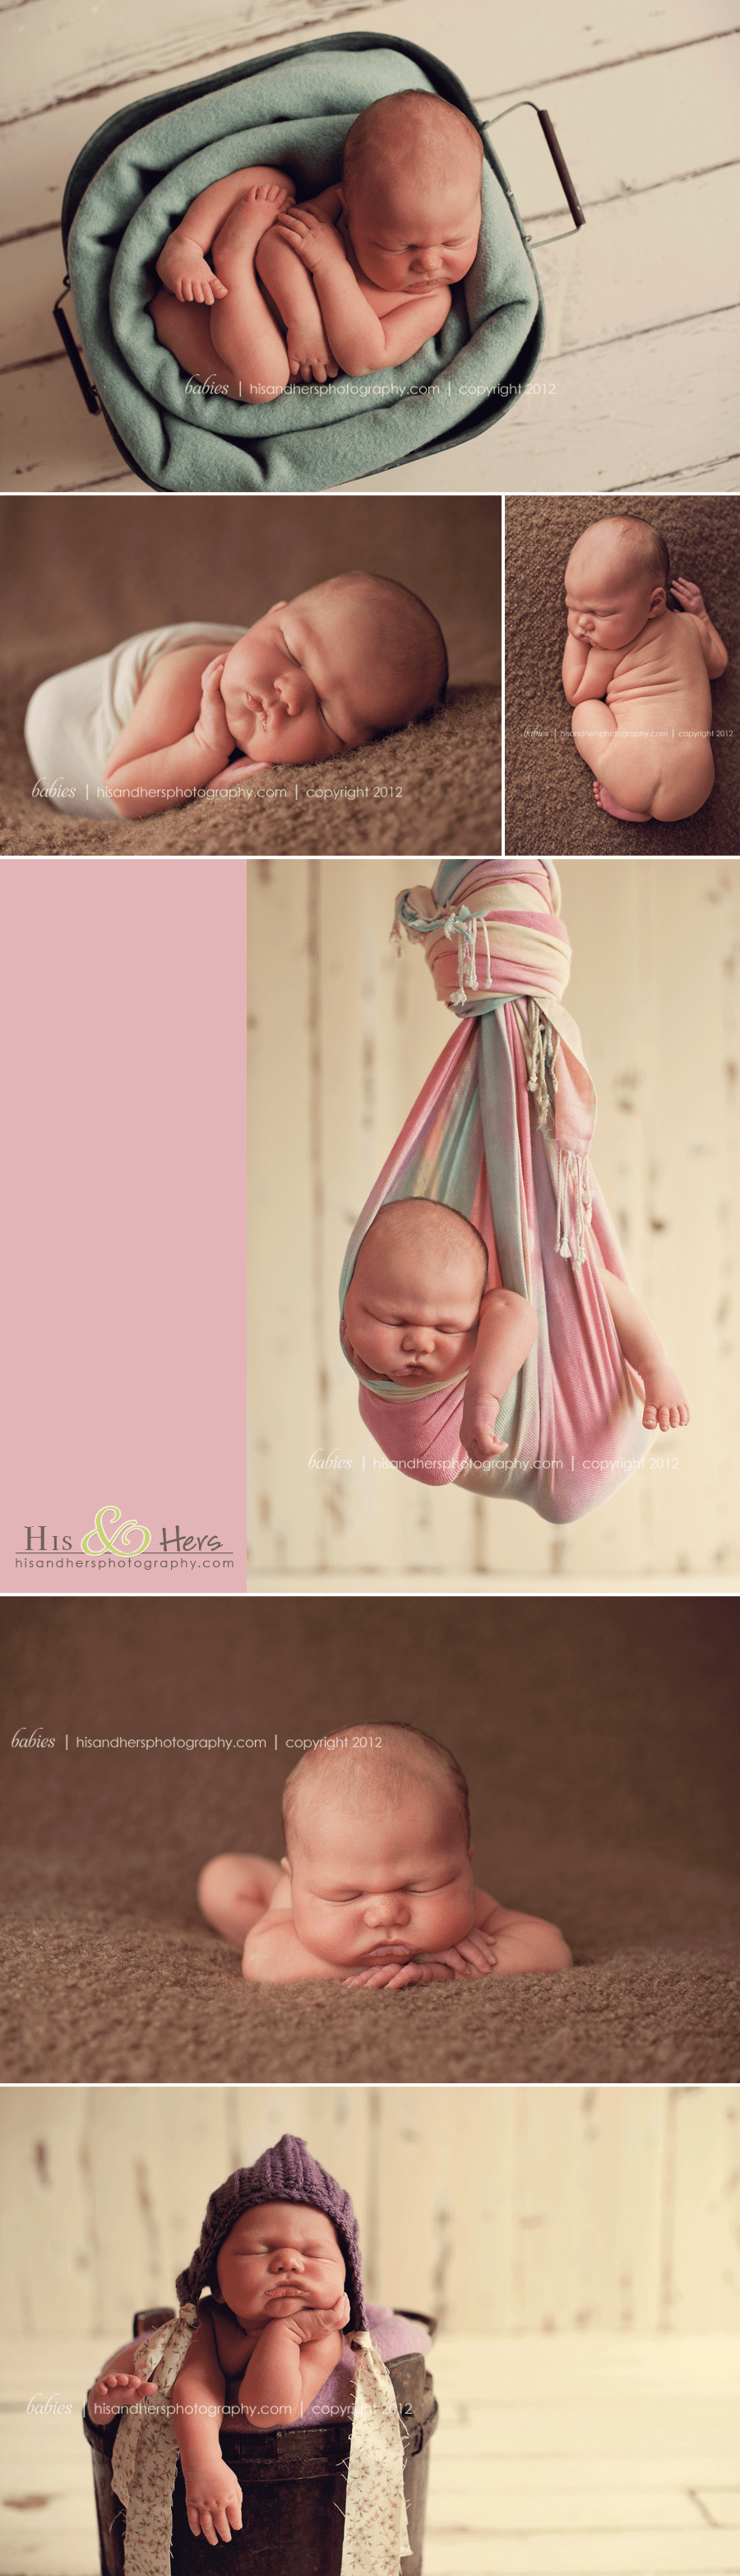 des moines iowa newborn photography photographer baby infant photos baby pictures photography studio